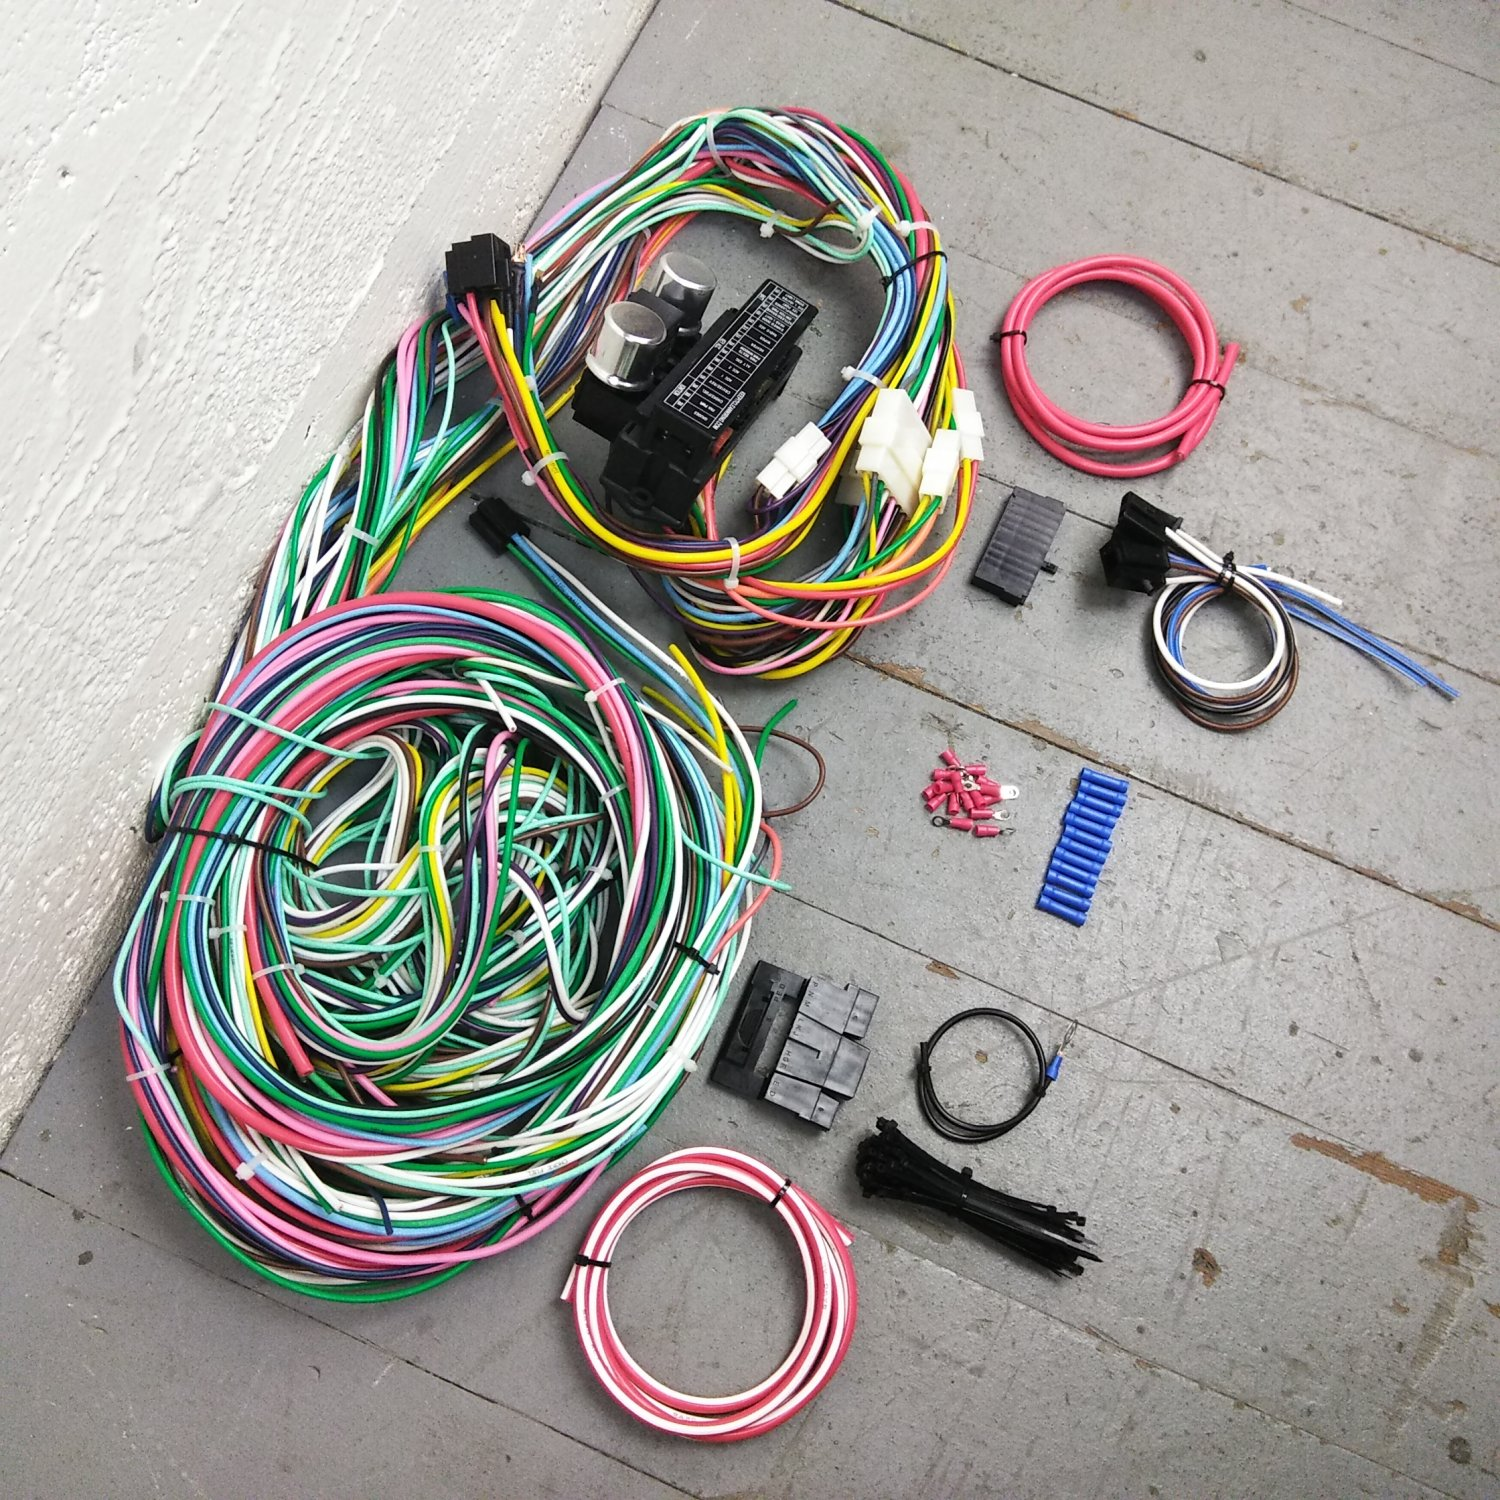 1970 - 1974 Dodge Challenger Wire Harness Upgrade Kit fits painless  complete new. Bar_Product_Description_C